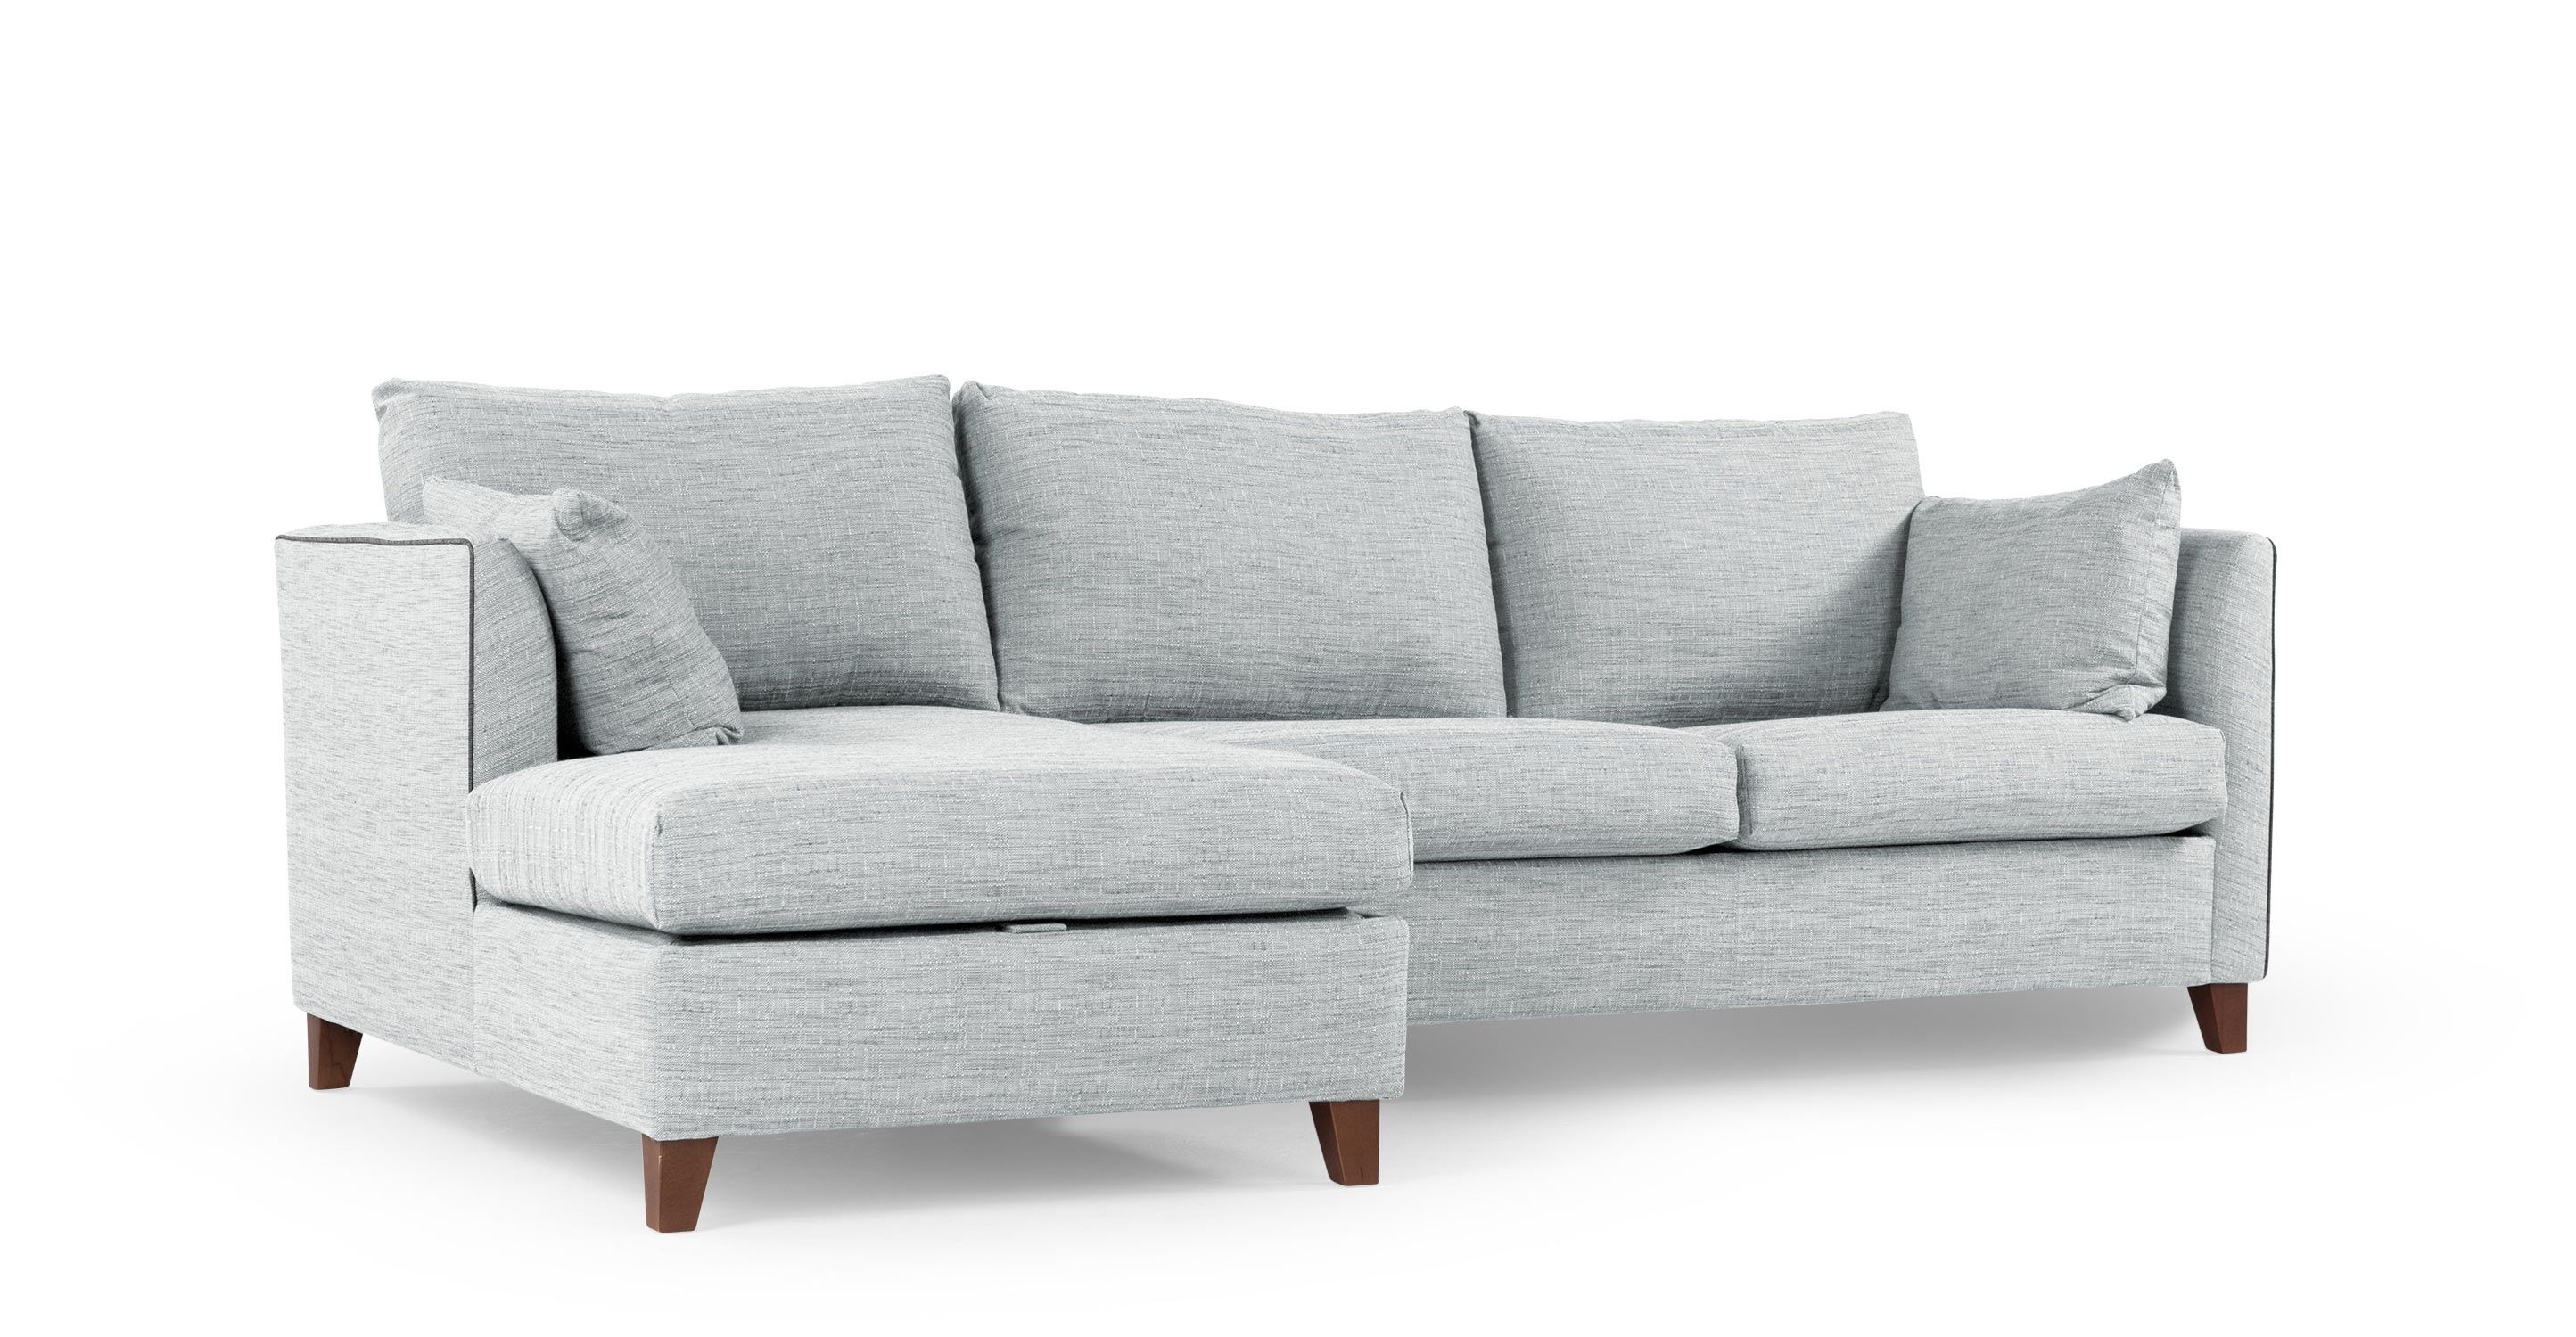 bari corner sofa bed review single seater designs storage sofabed left hand facing malva blue